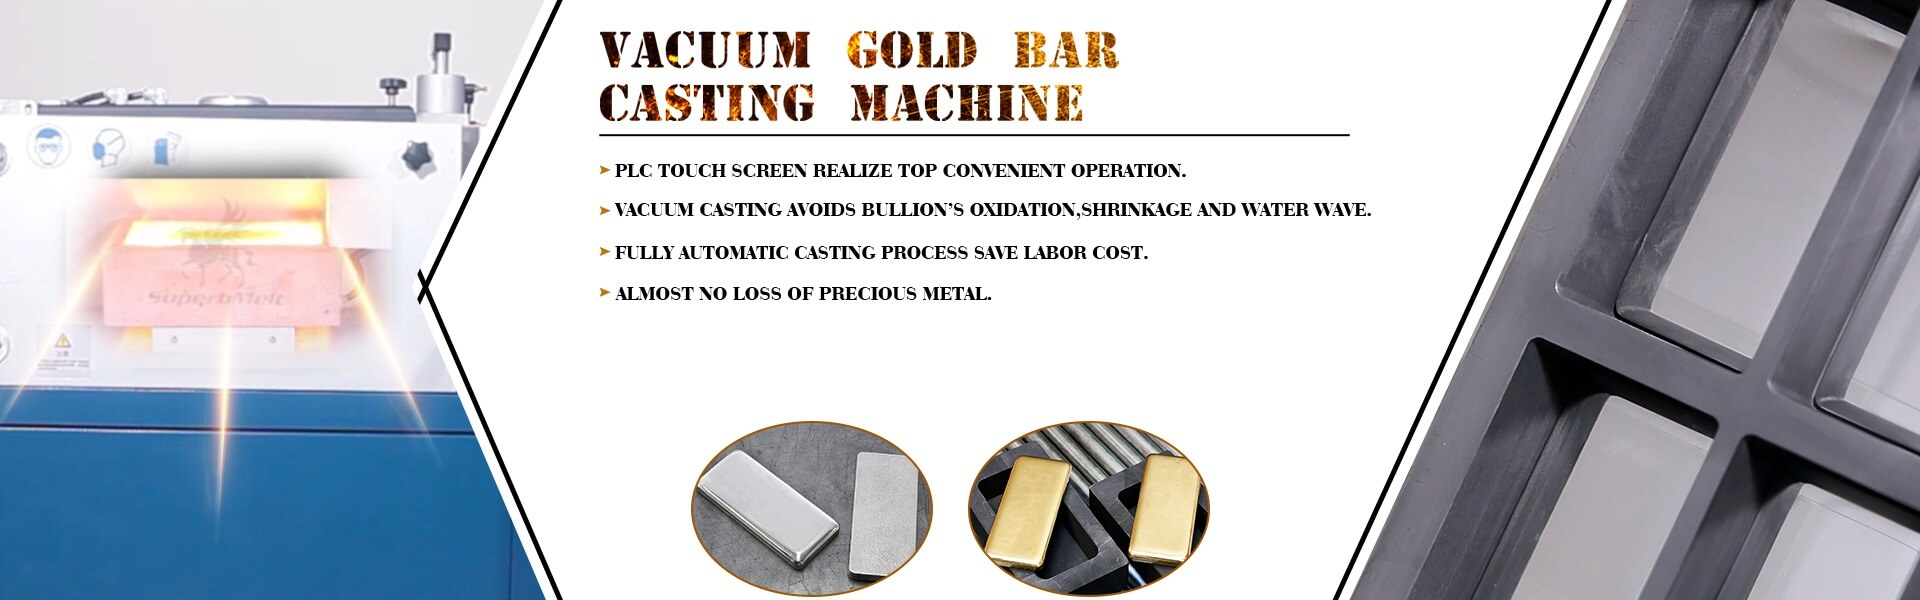 jewelry machinery for god bar making